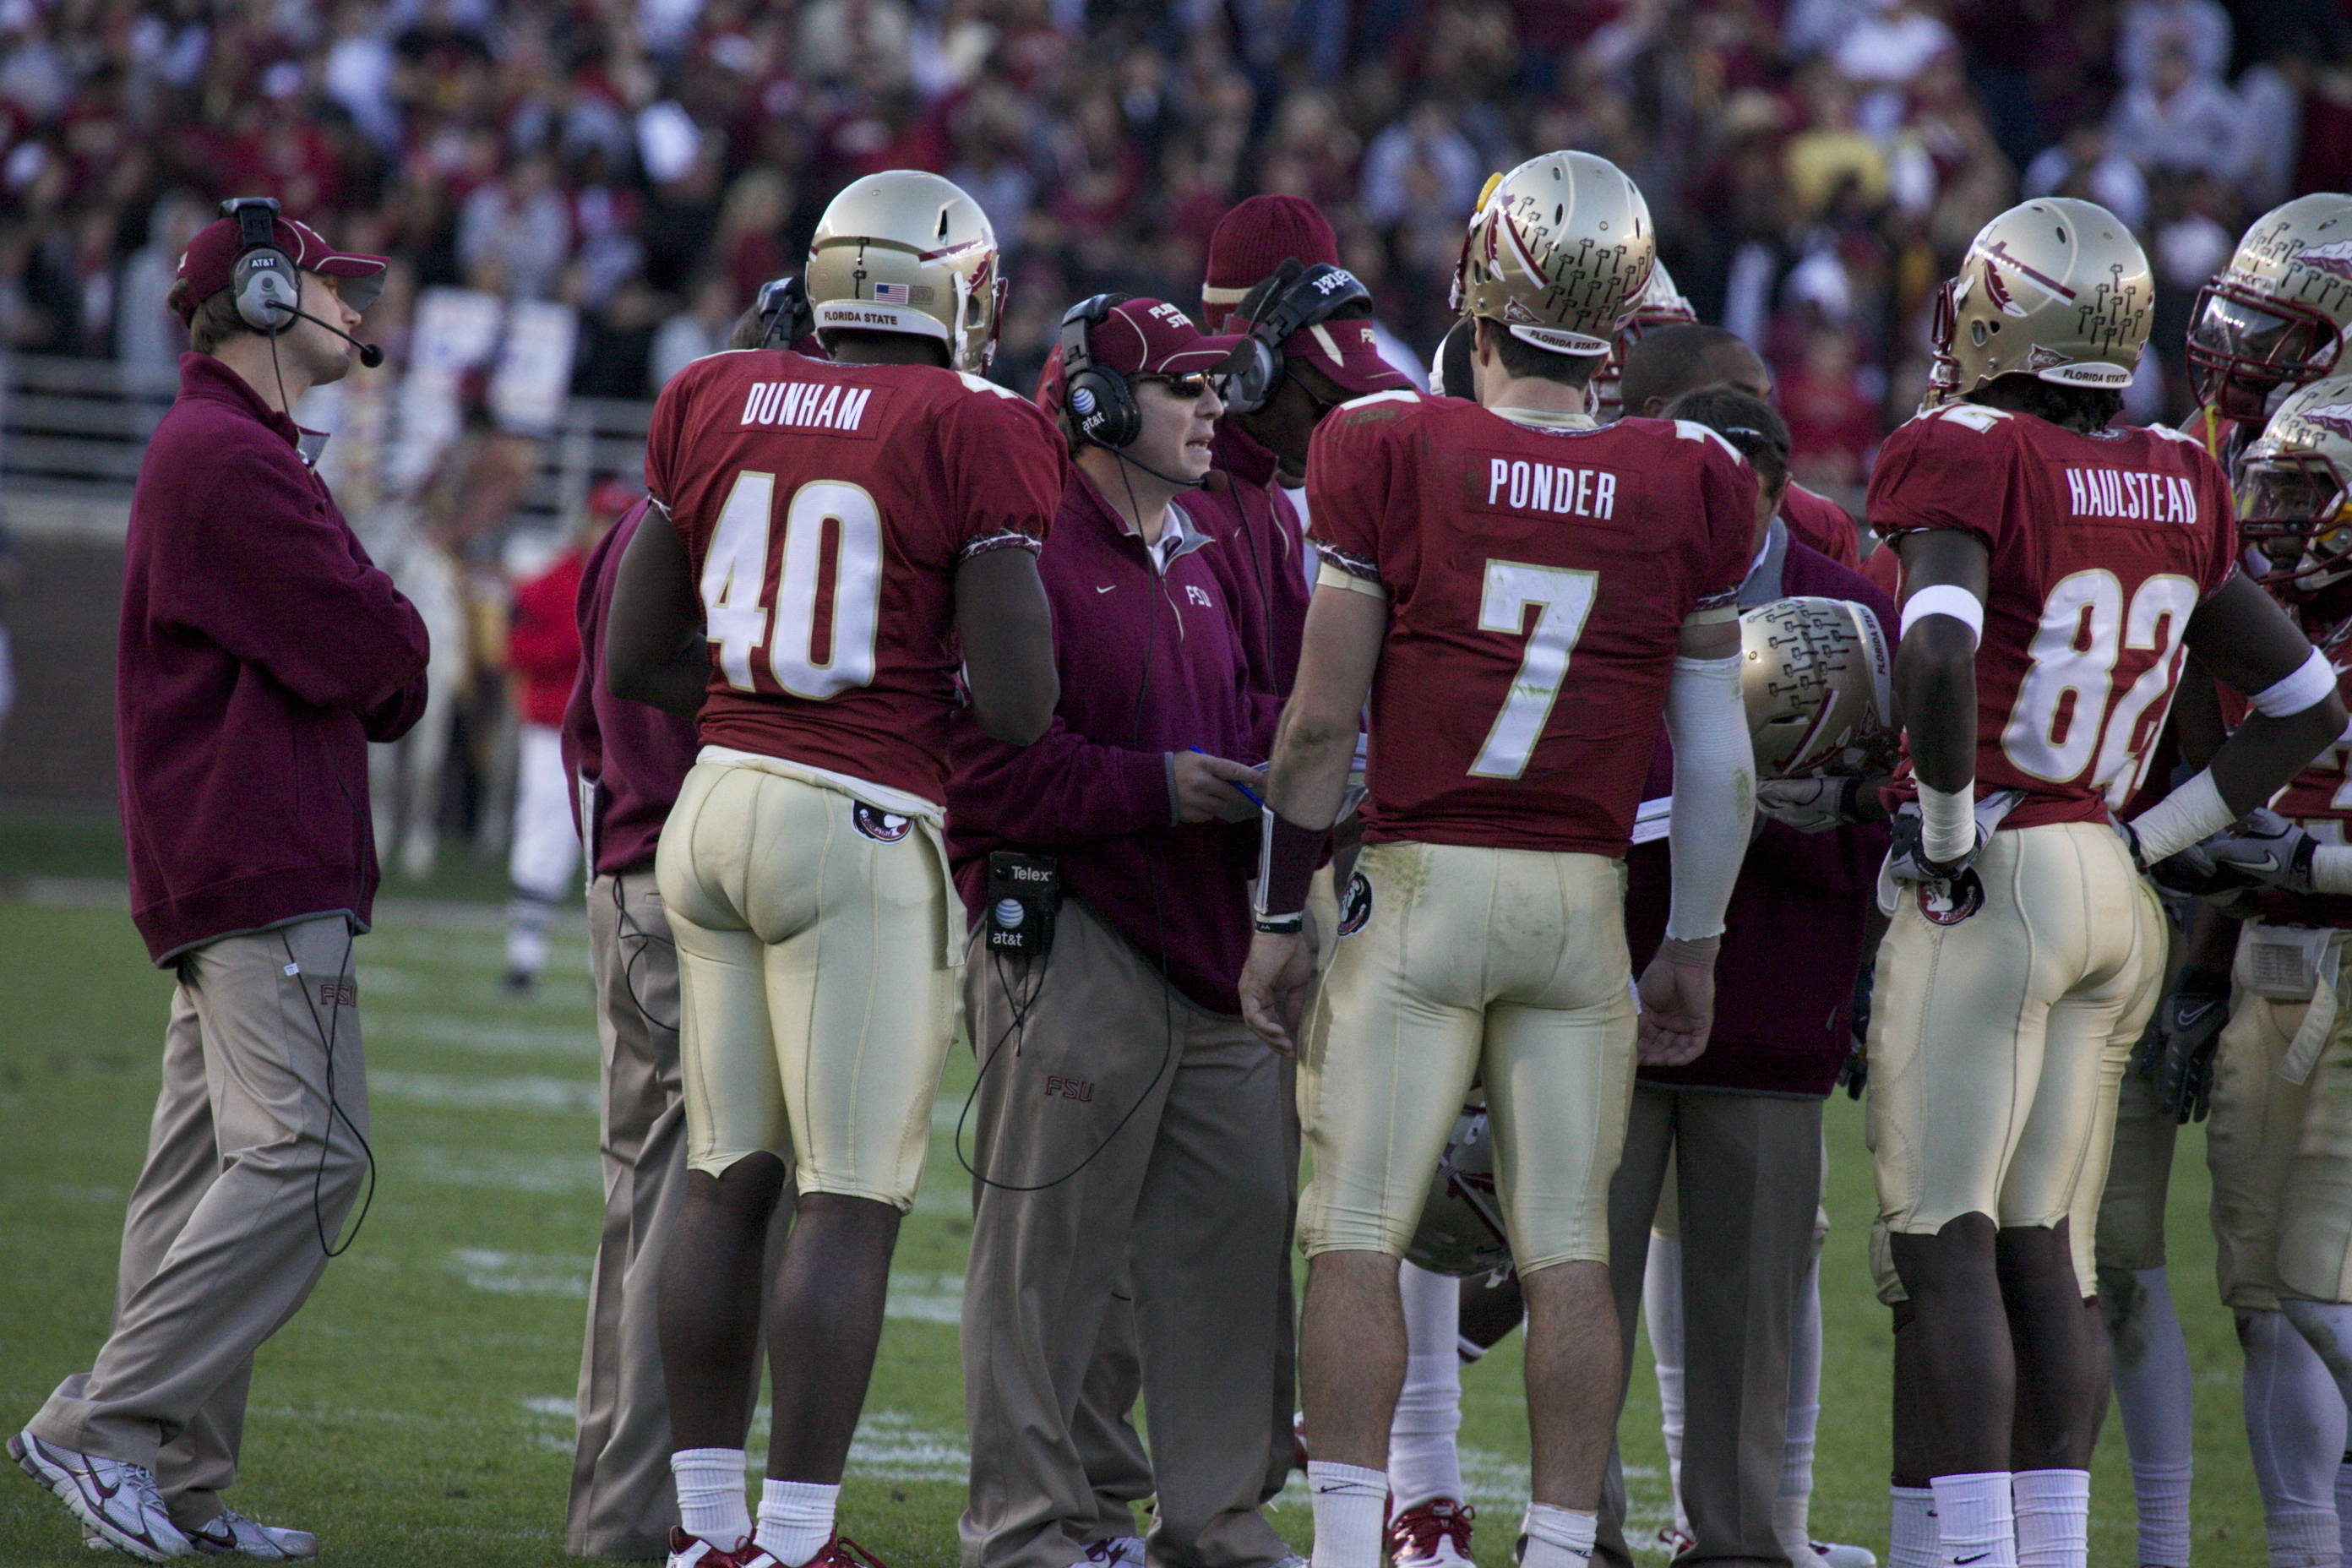 Matt Dunham (40), Jimbo Fisher, Christian Ponder (7), Willie Haulstead (82)